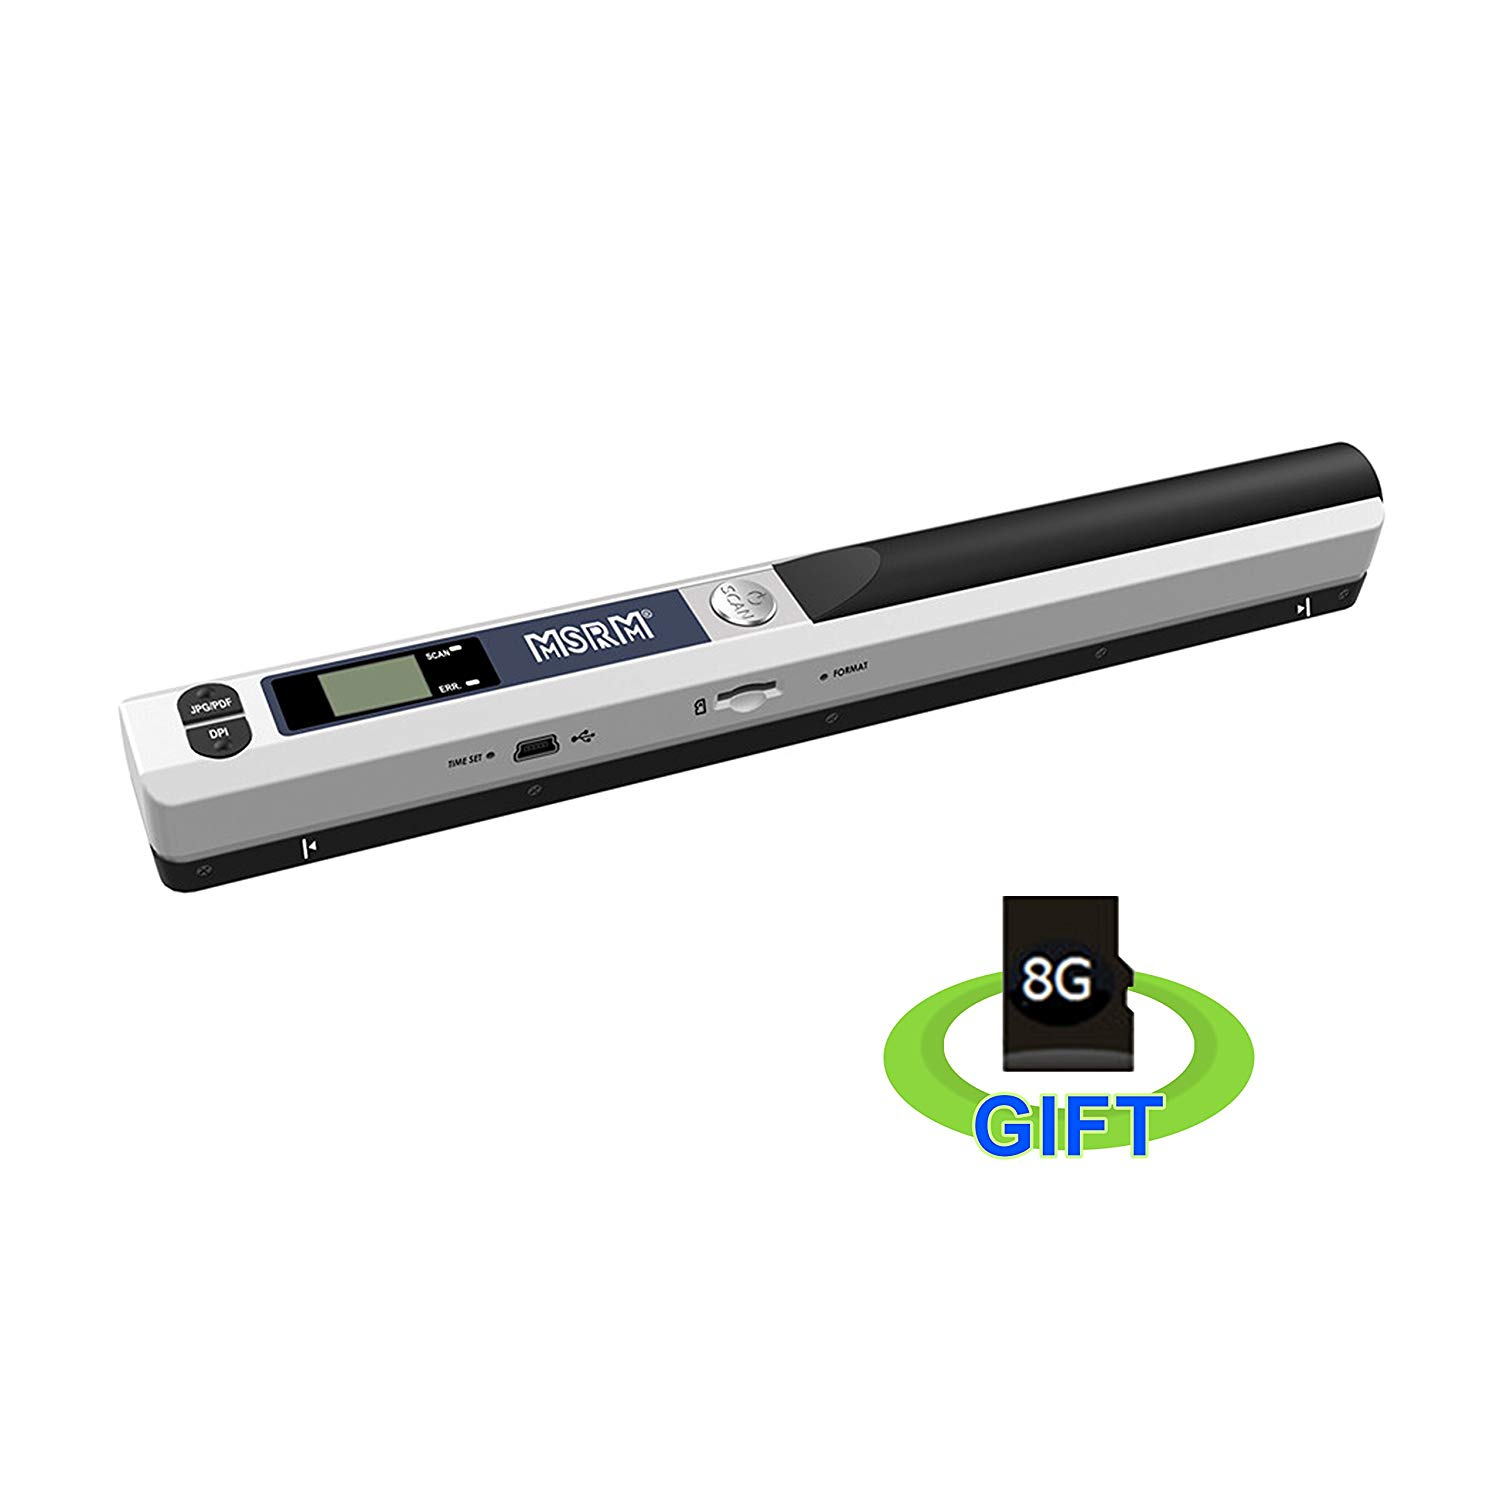 MSRM Wand Mobile Document & Image Scanner USB Portable Scanner with 8G Micro SD Card [Silver]